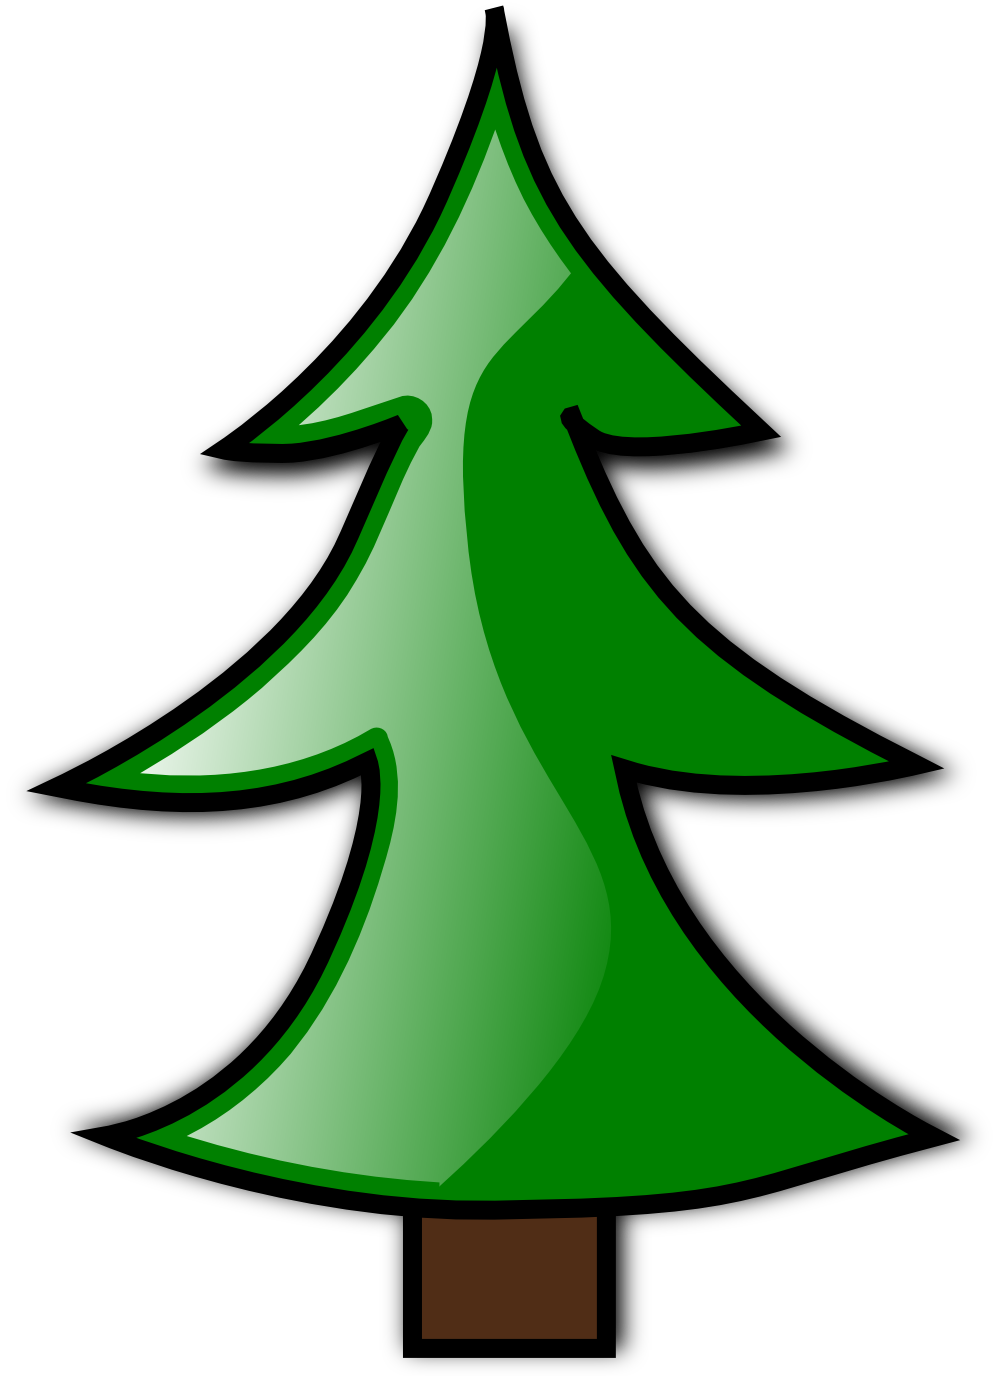 Christmas Tree | Funny Clip art and Holidays Pictures - ClipArt Best ...